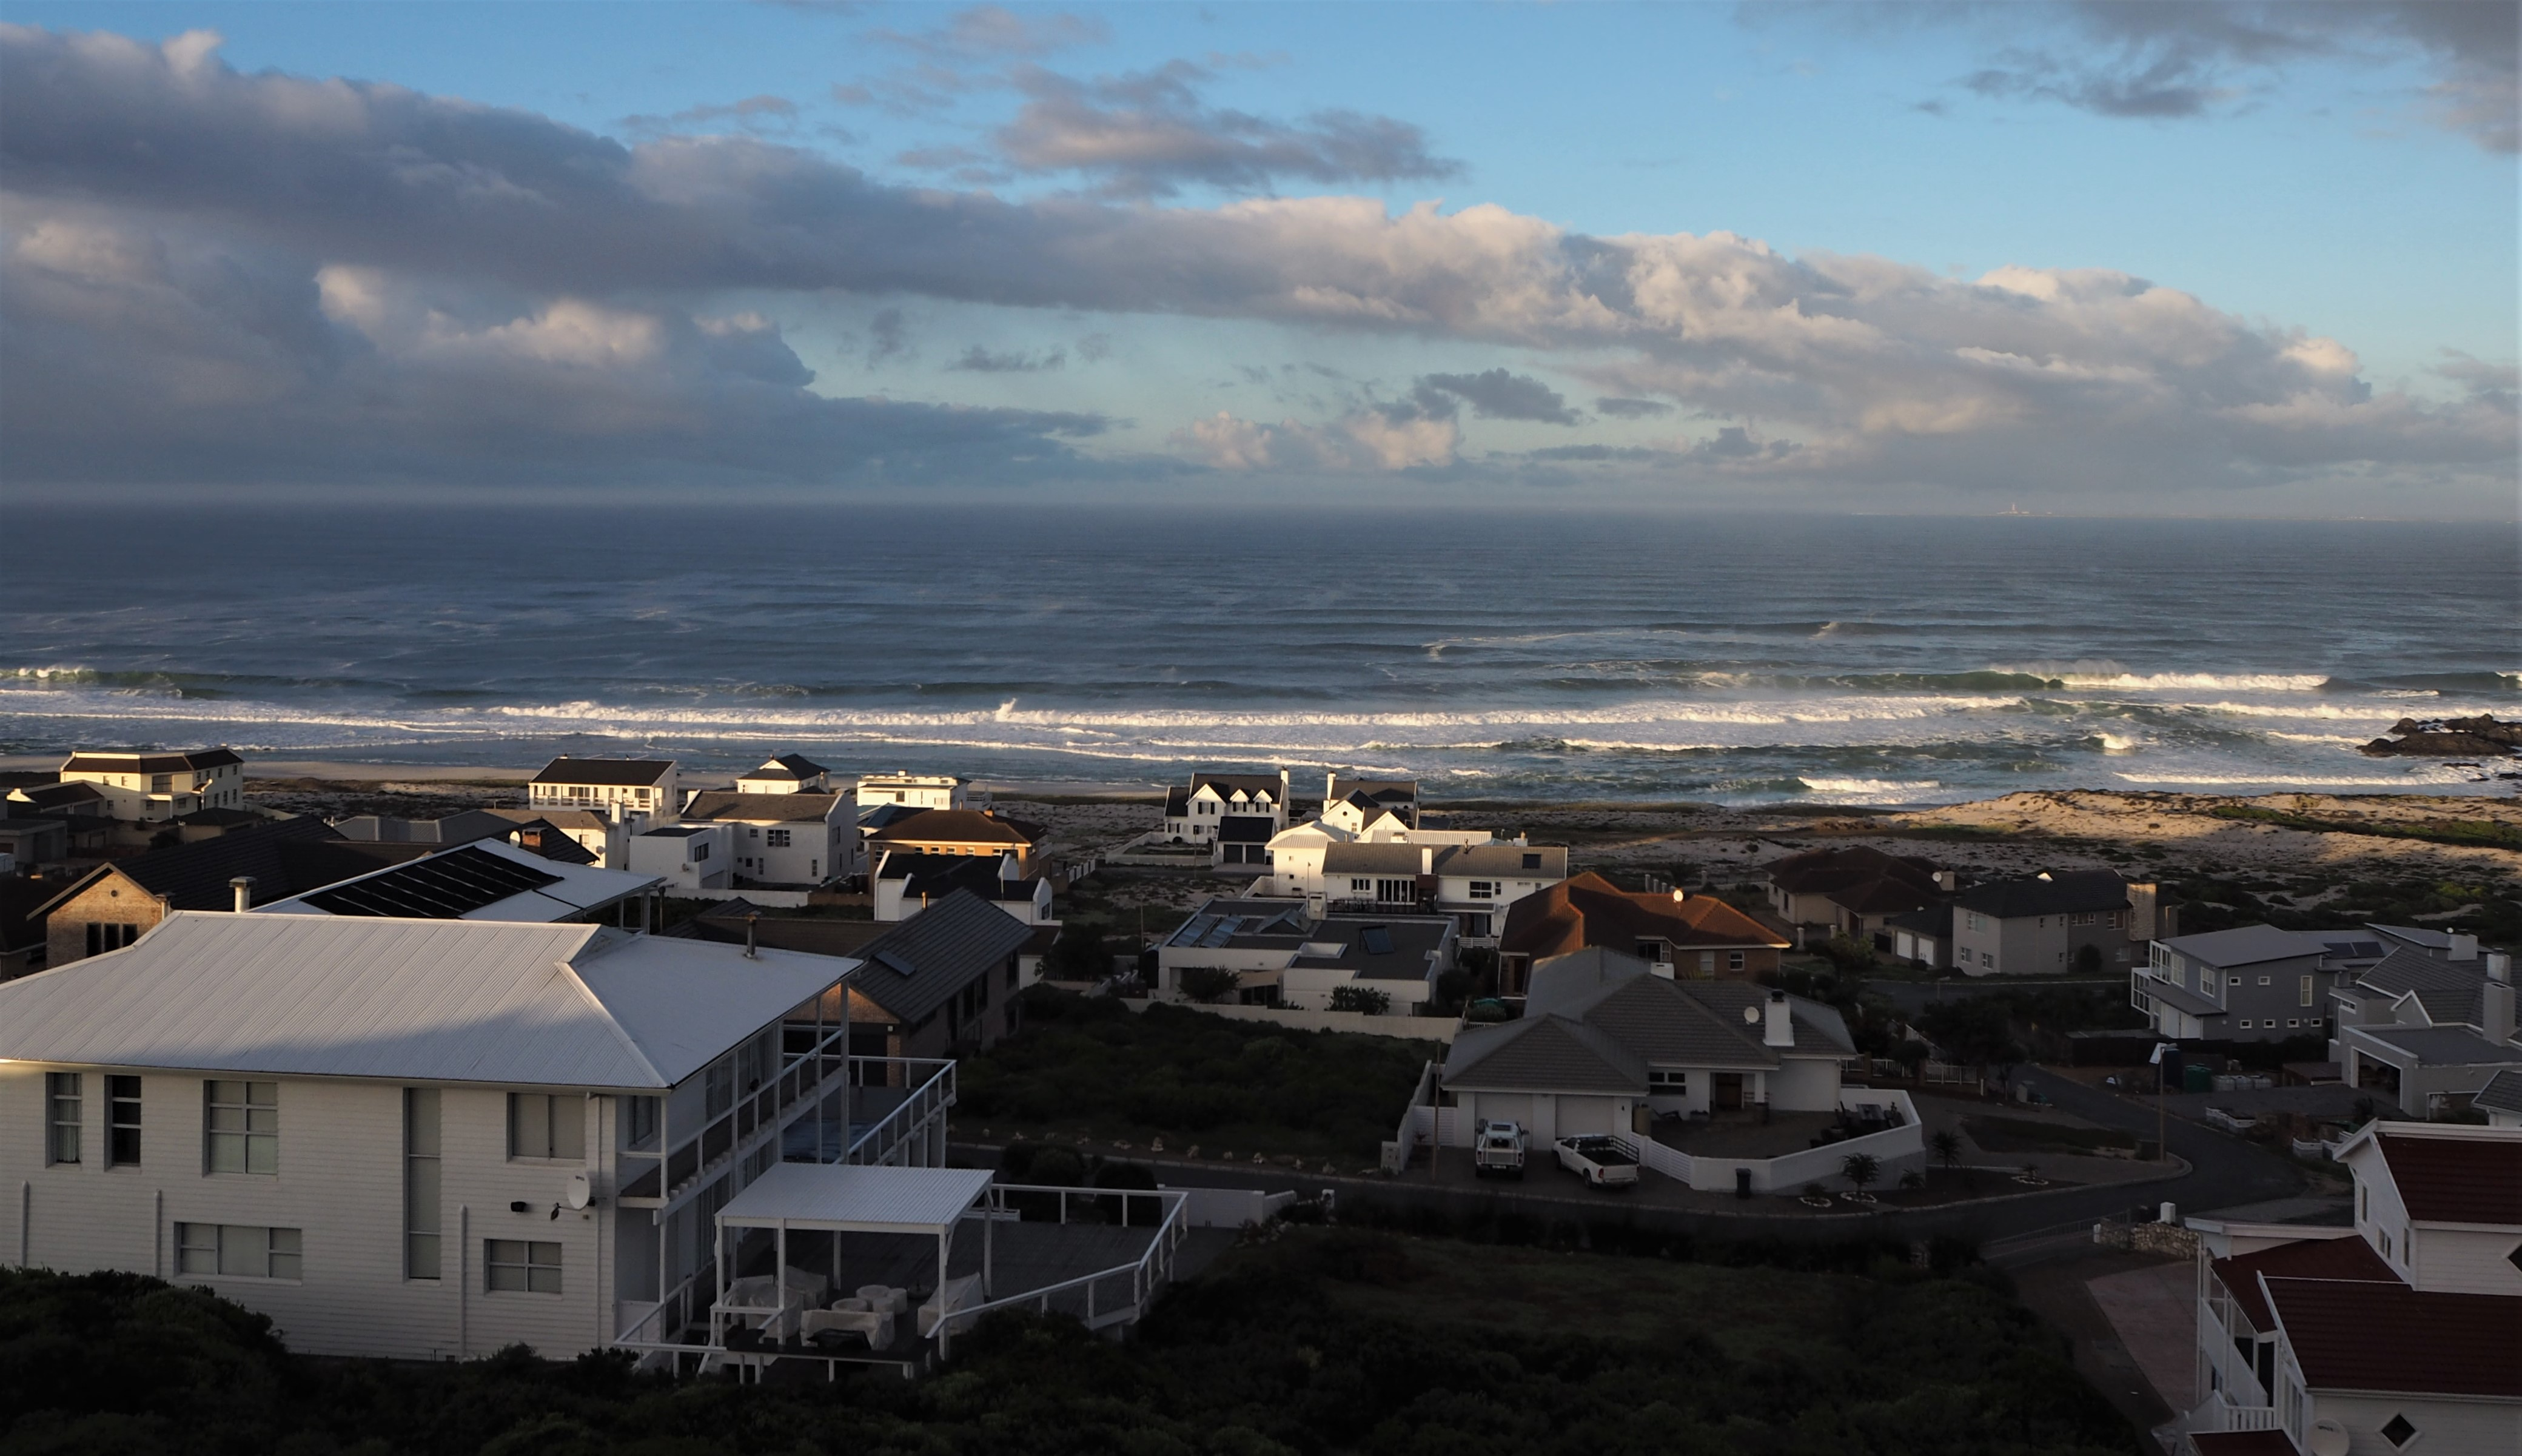 Yzerfontein views